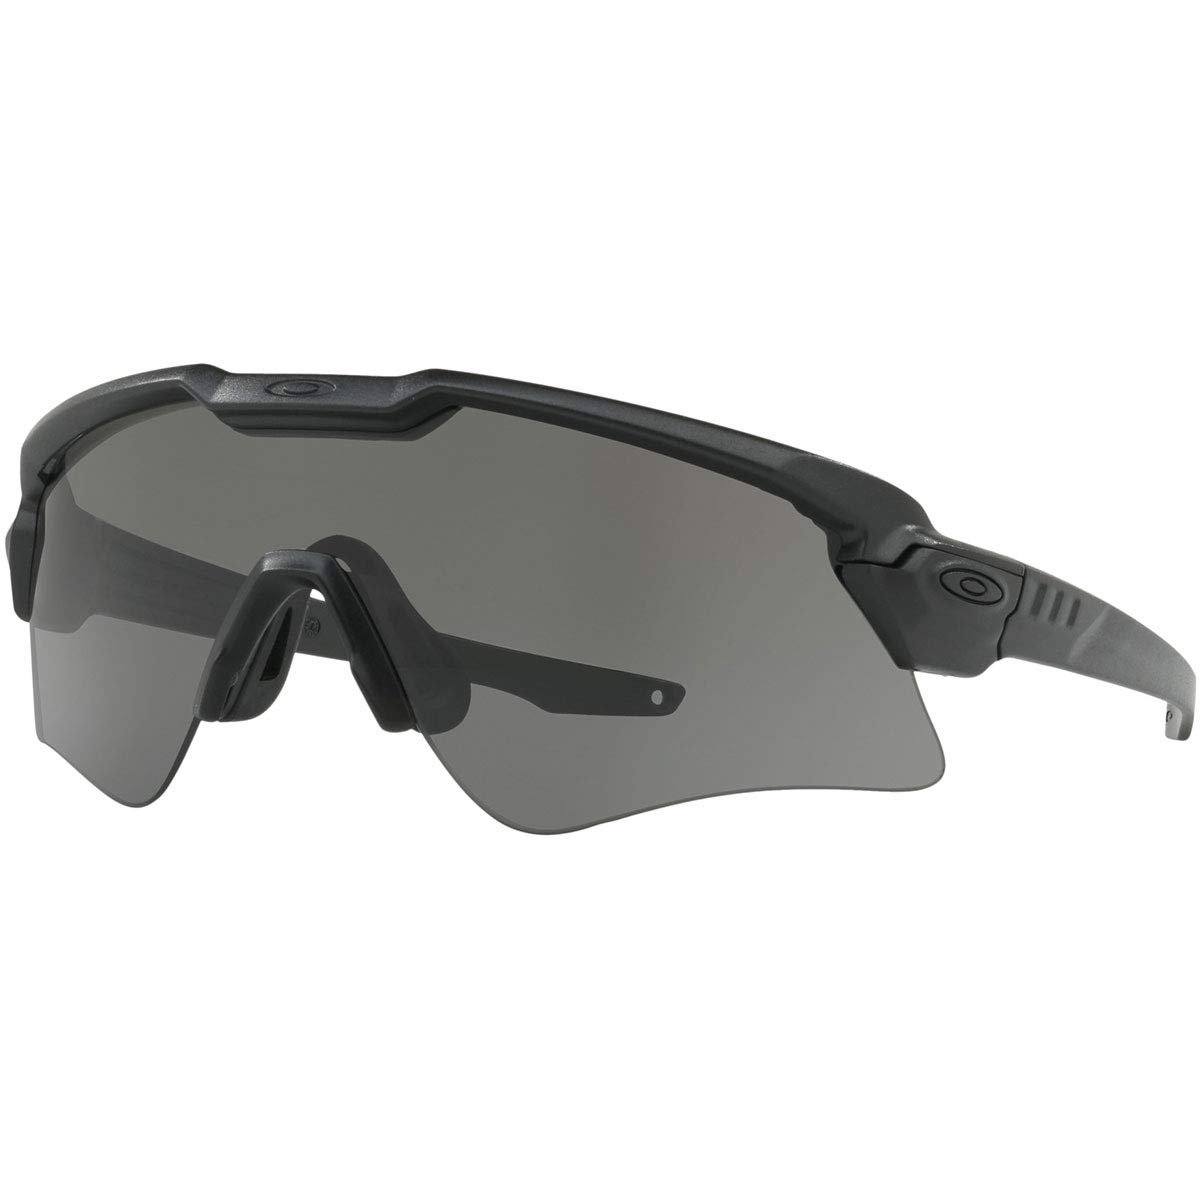 Oakley Men's Standard Issue Ballistic M Frame Alpha Sunglasses,OS,Matte Black/Clear by Oakley